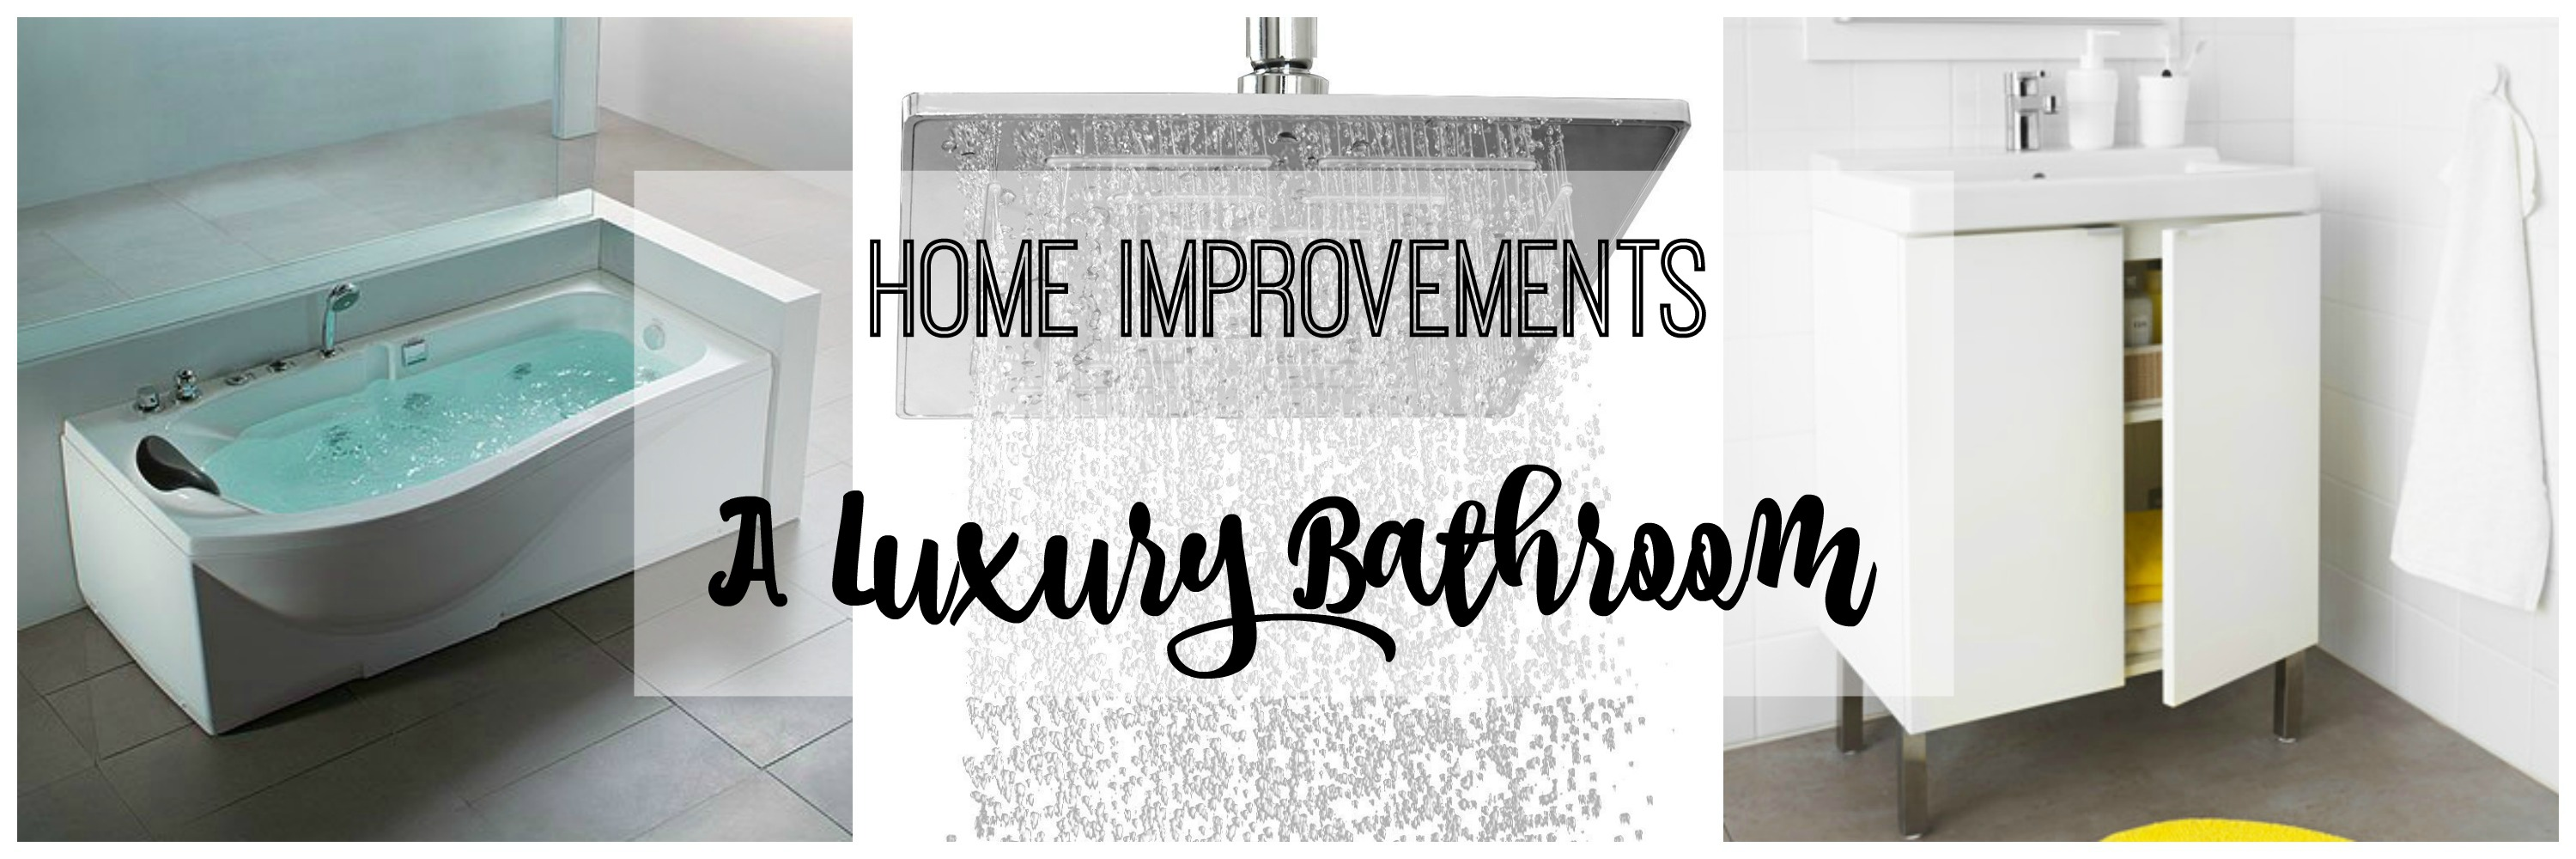 home improvements bathroom title